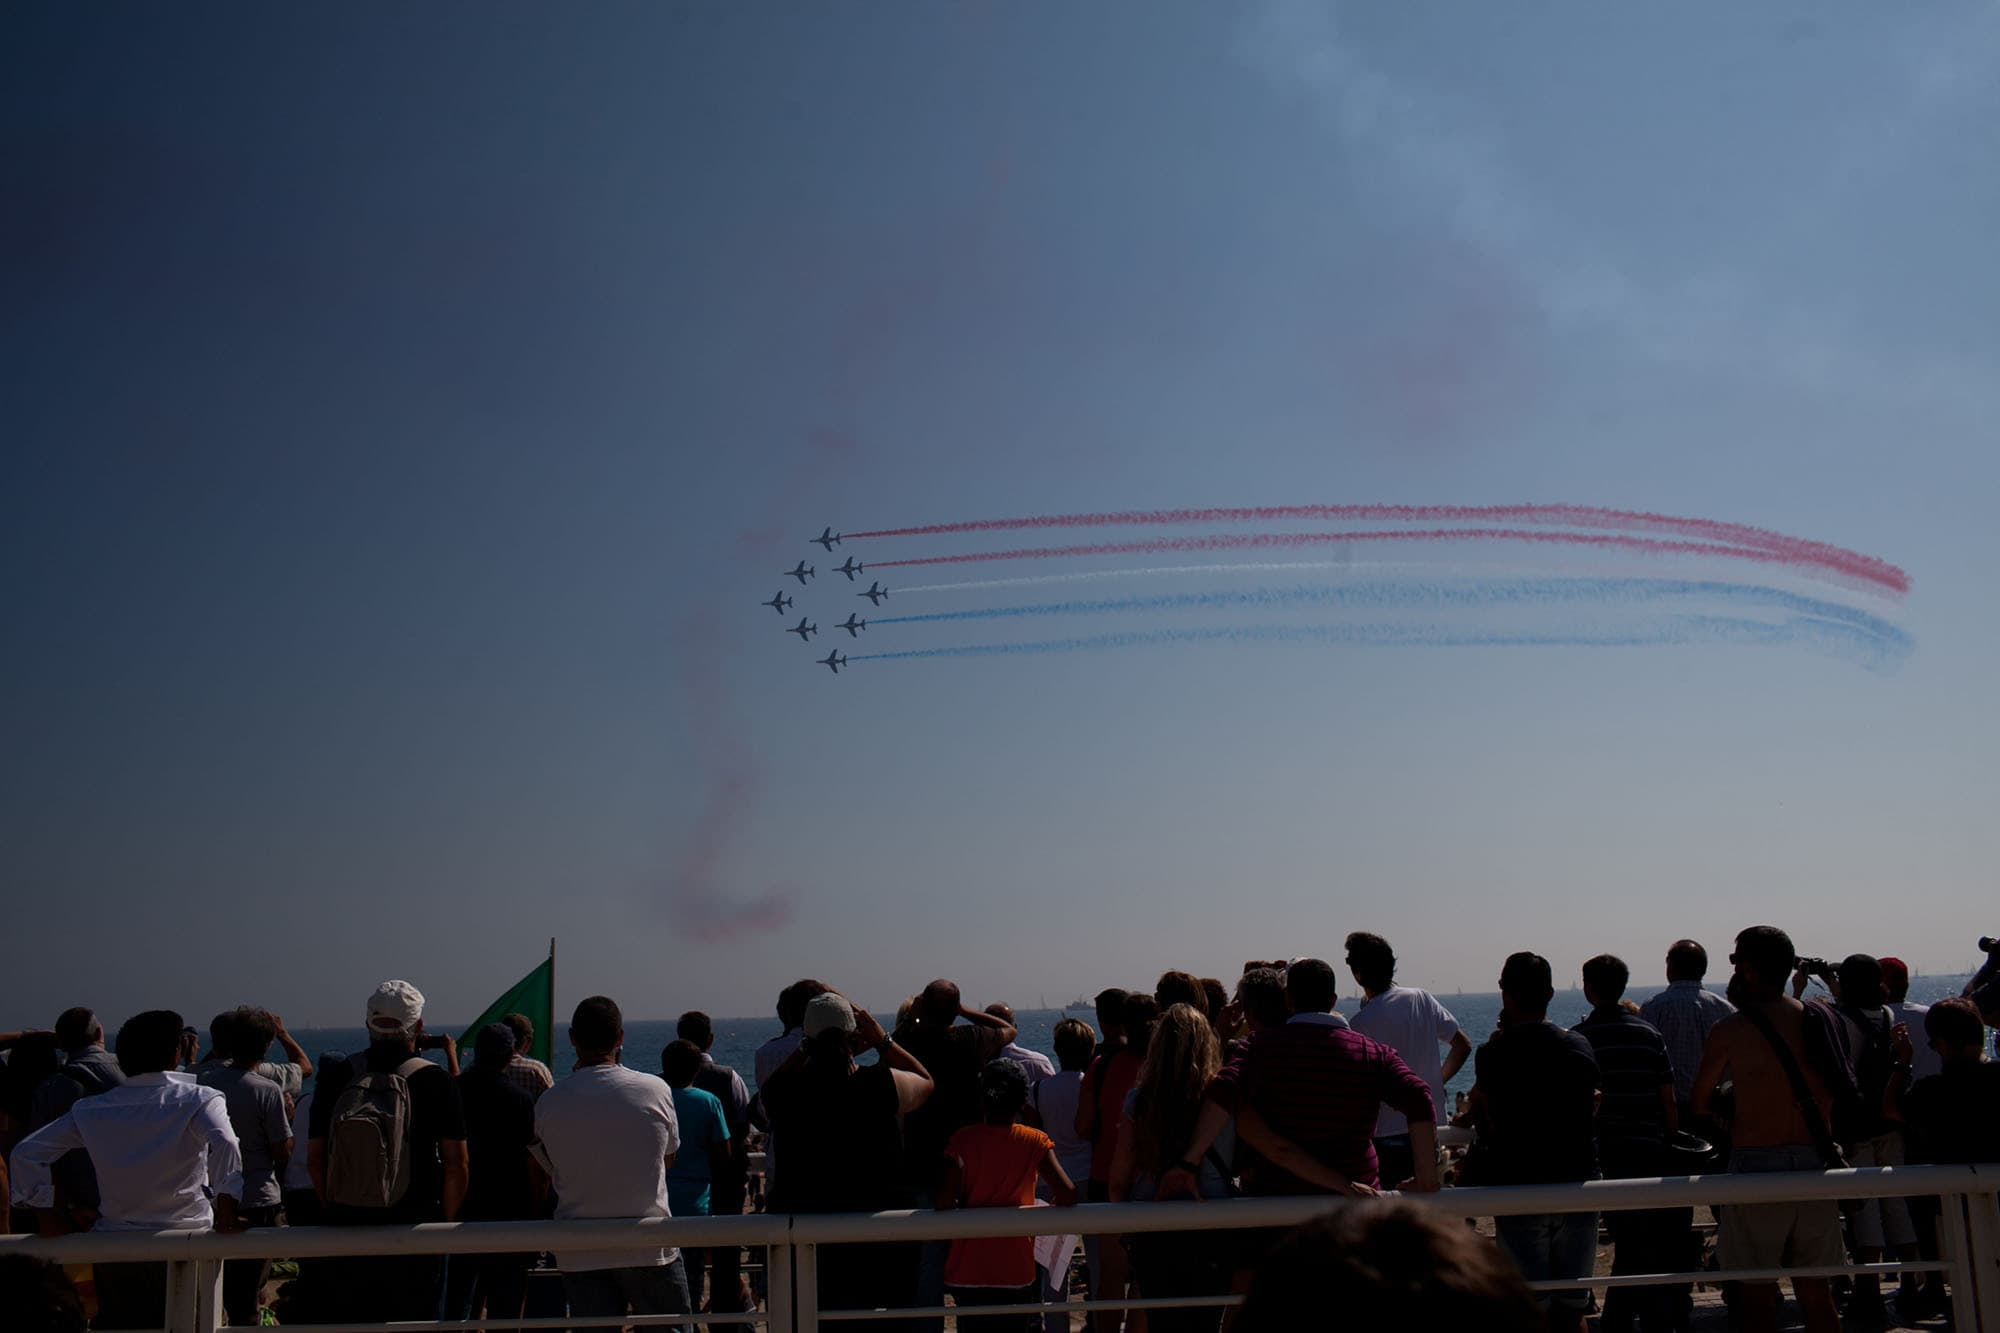 Air show in Barcelona